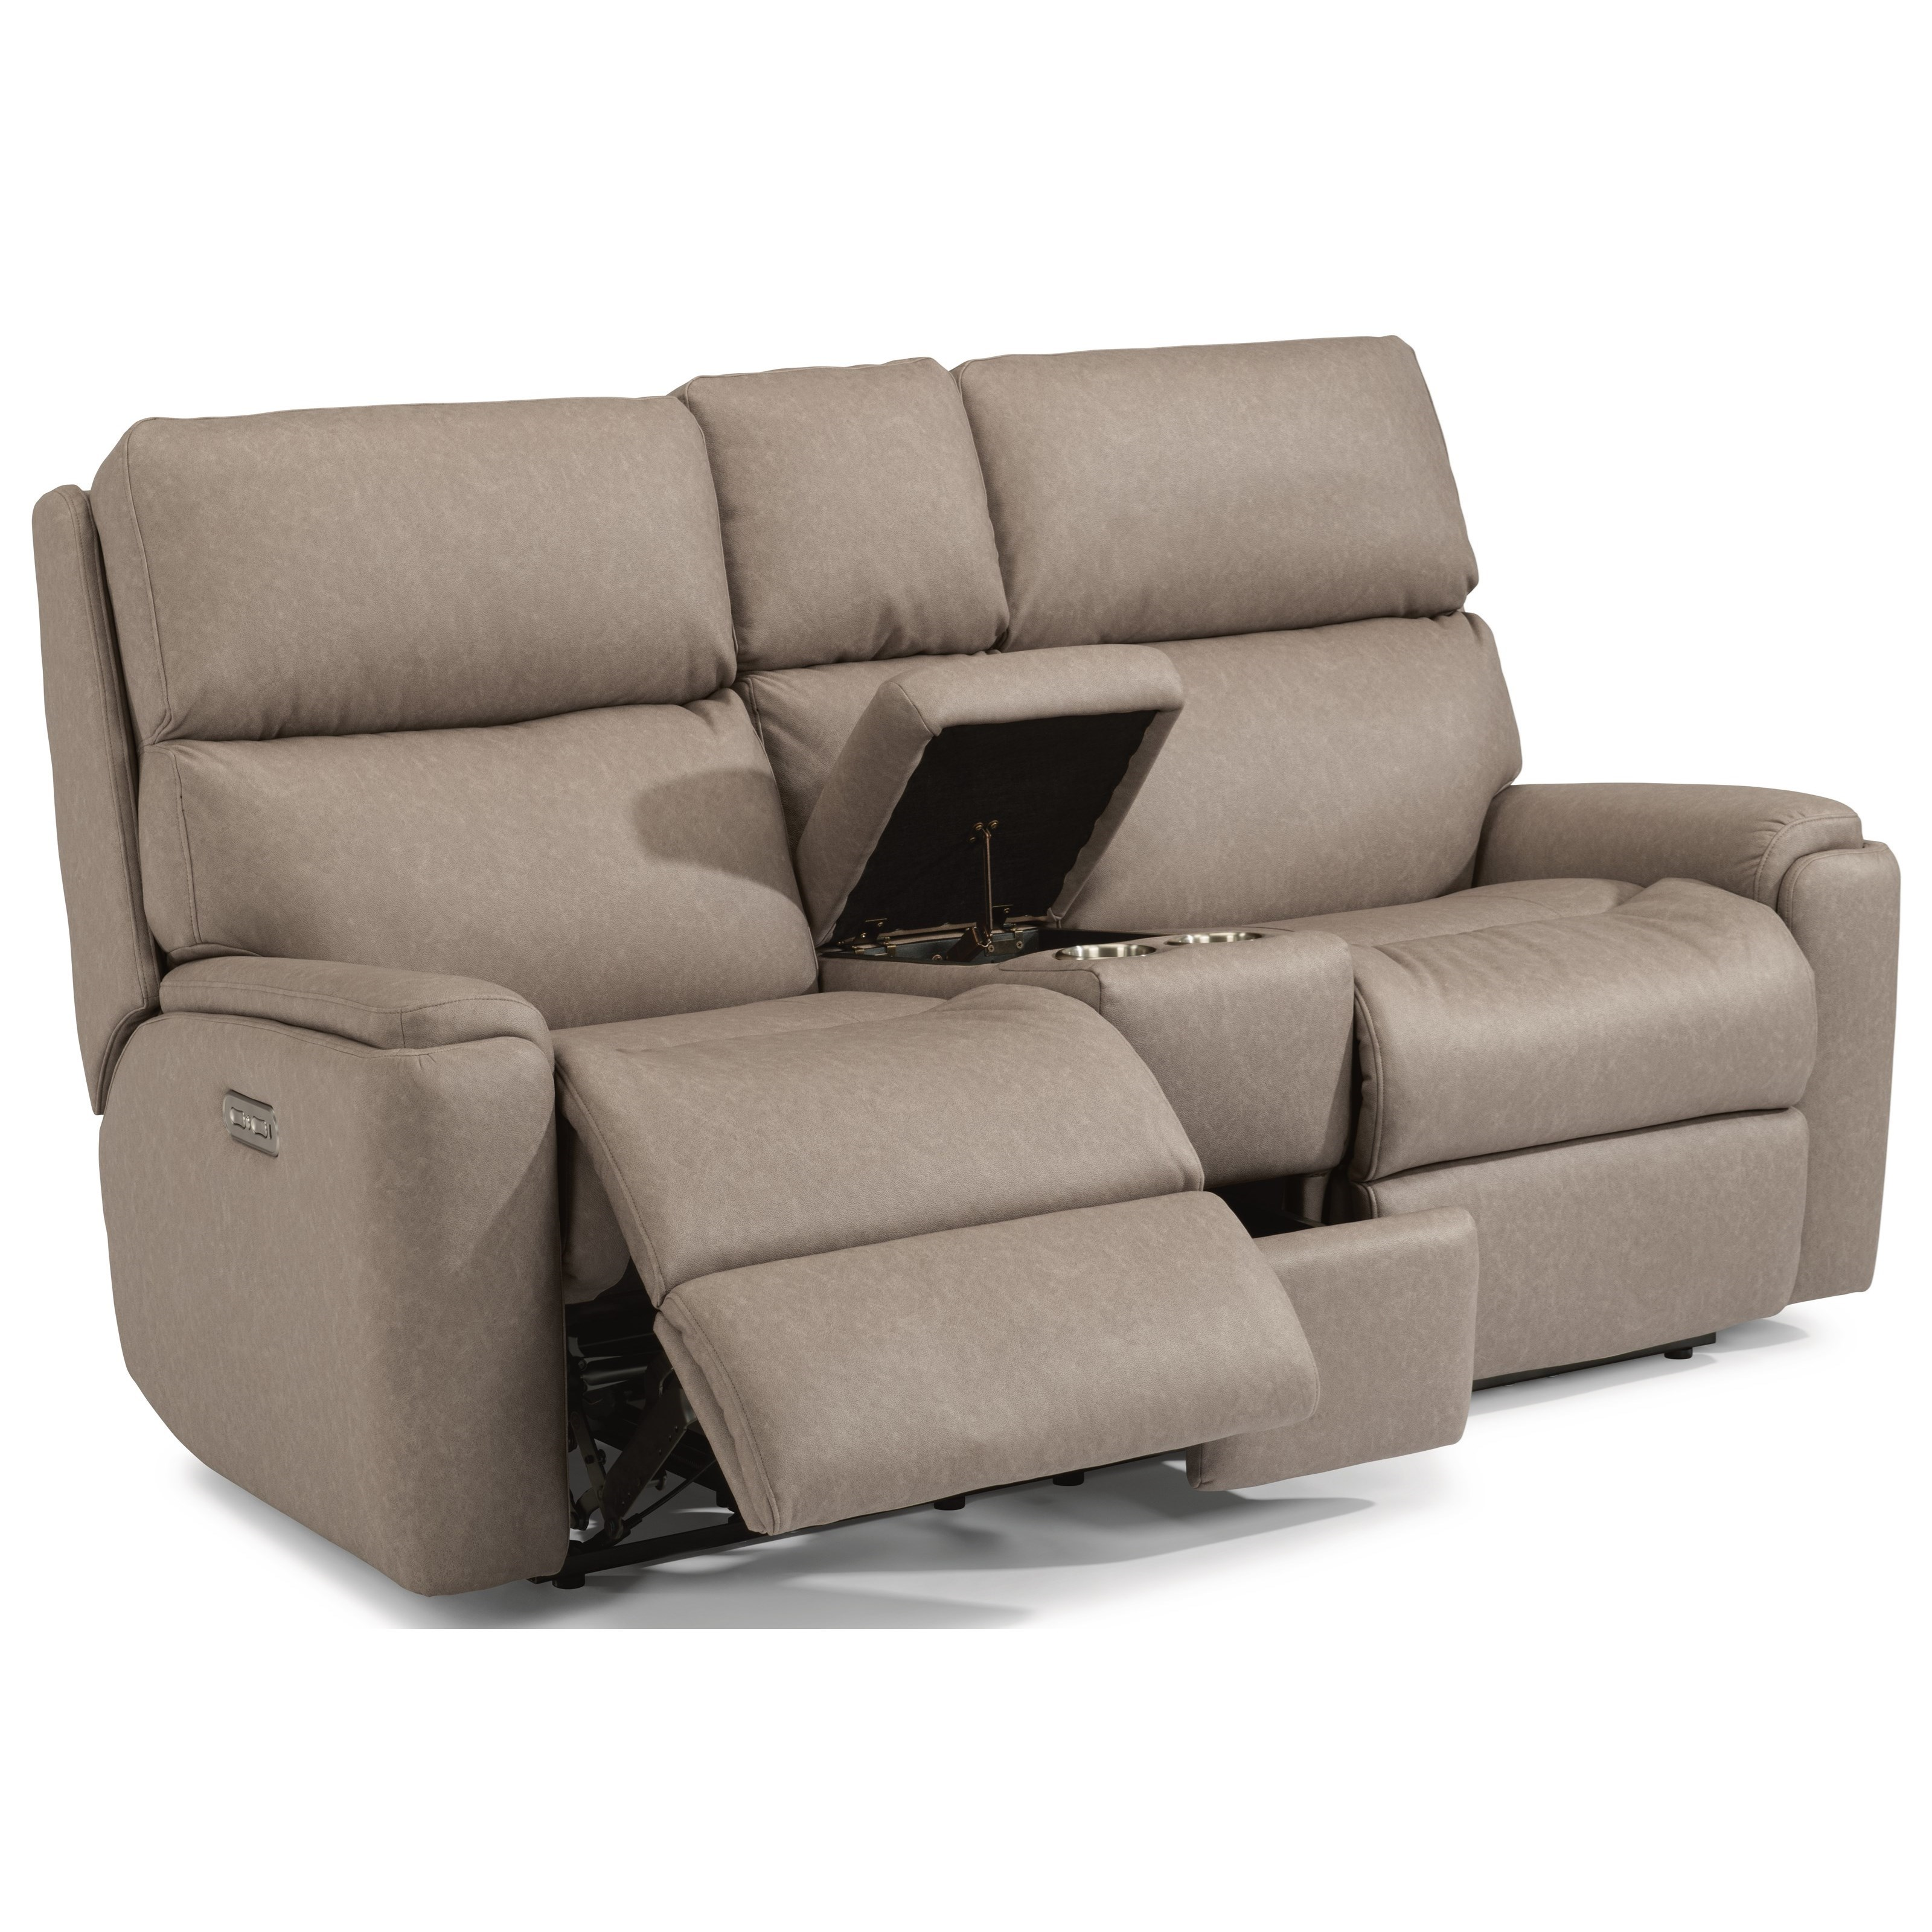 Rio Power Reclining Loveseat with Console by Flexsteel at Walker's Furniture